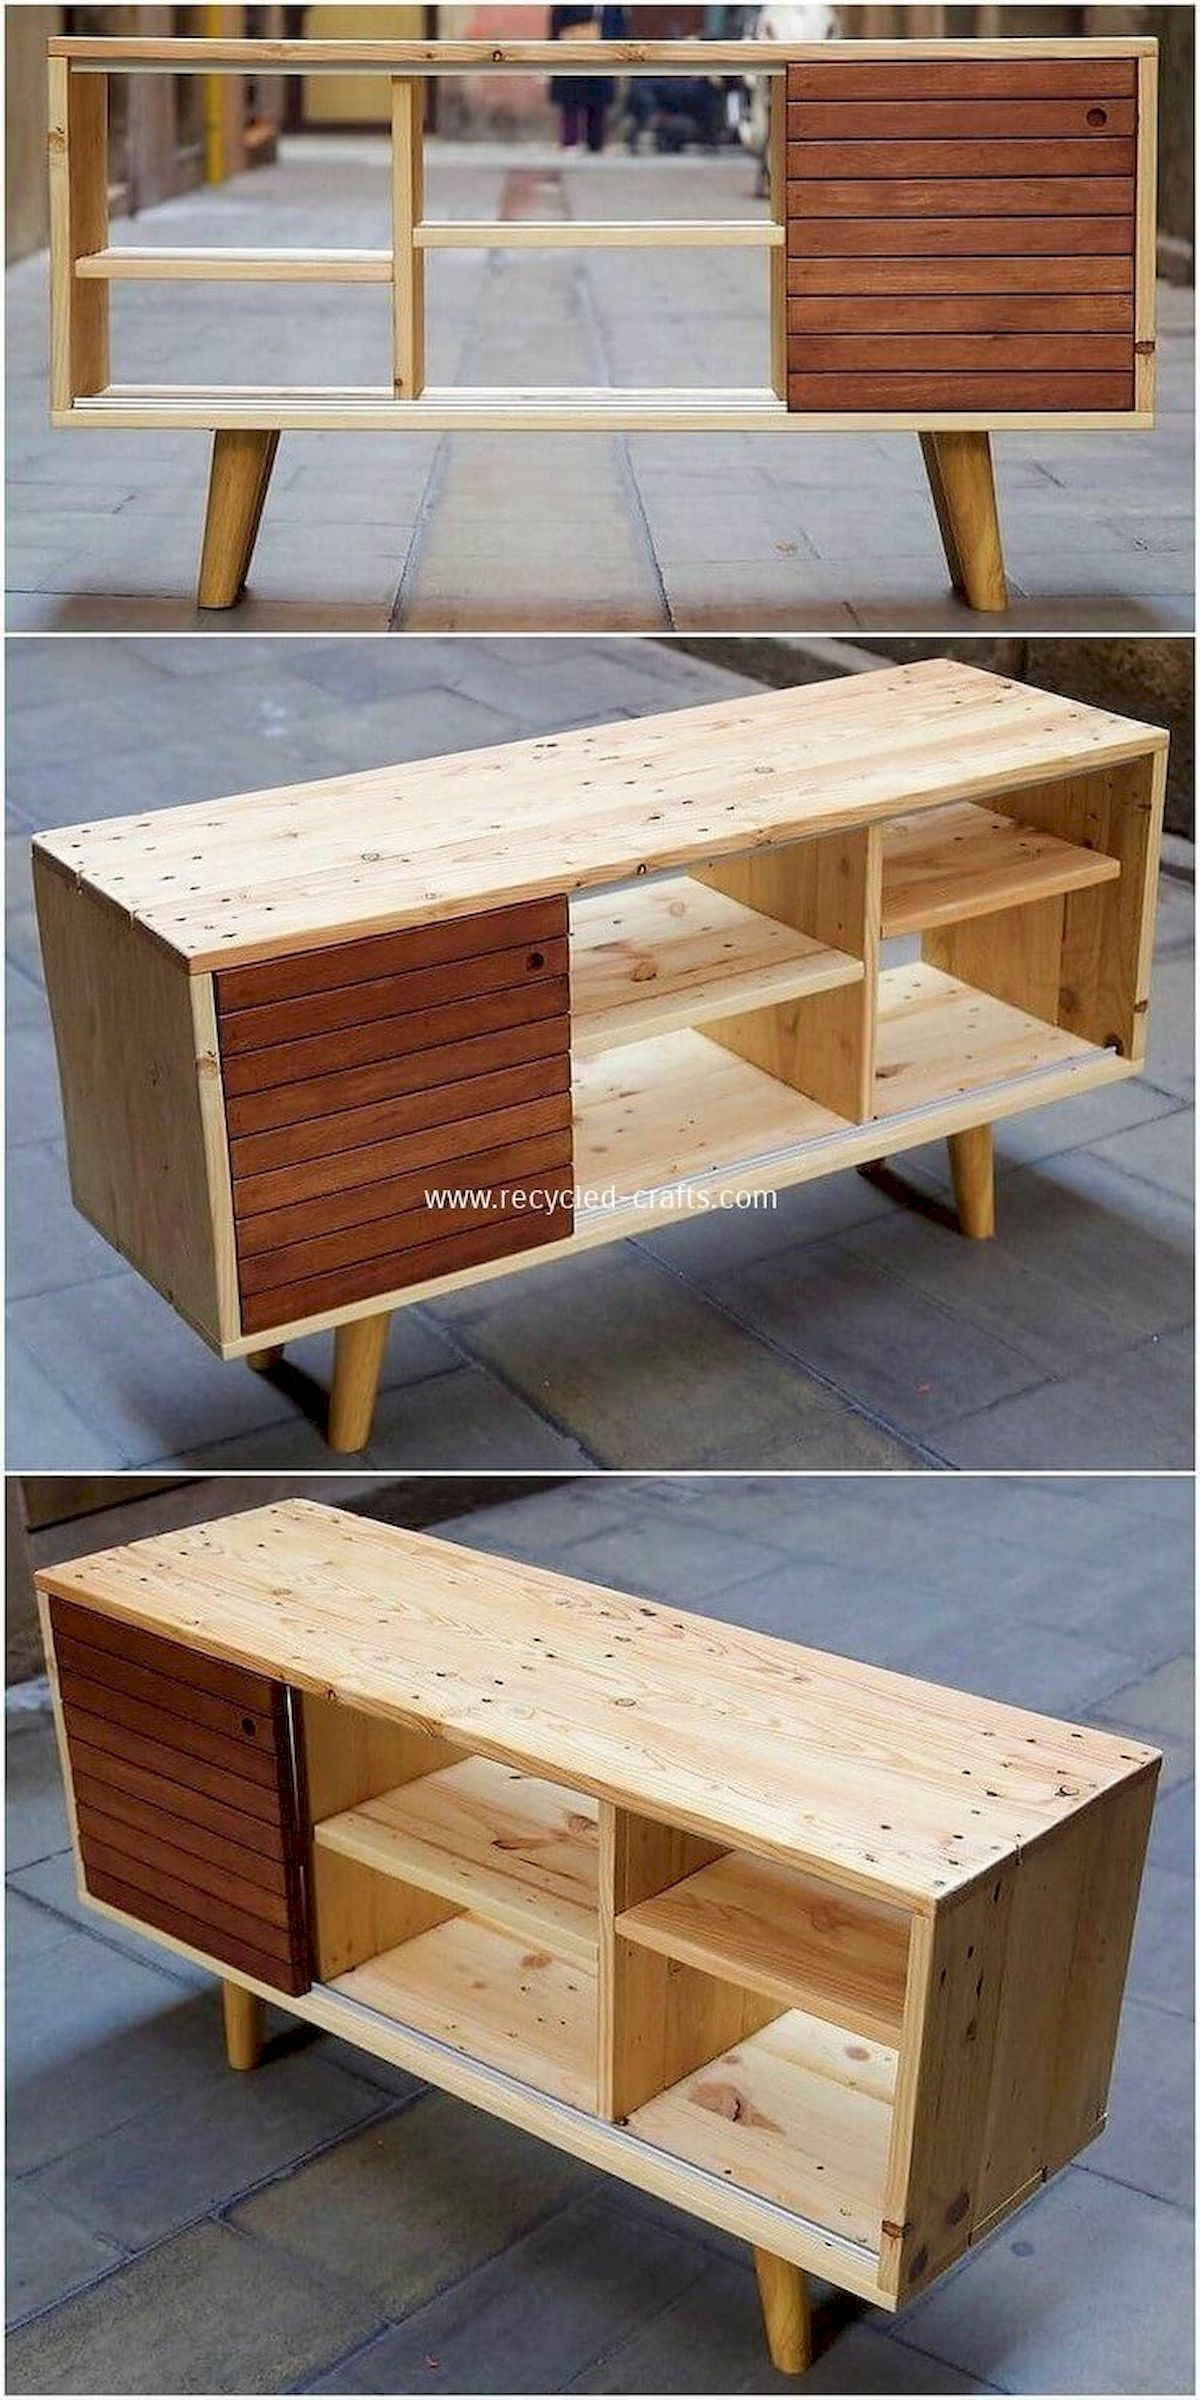 Photo of 60 simple DIY wooden furniture projects ideas